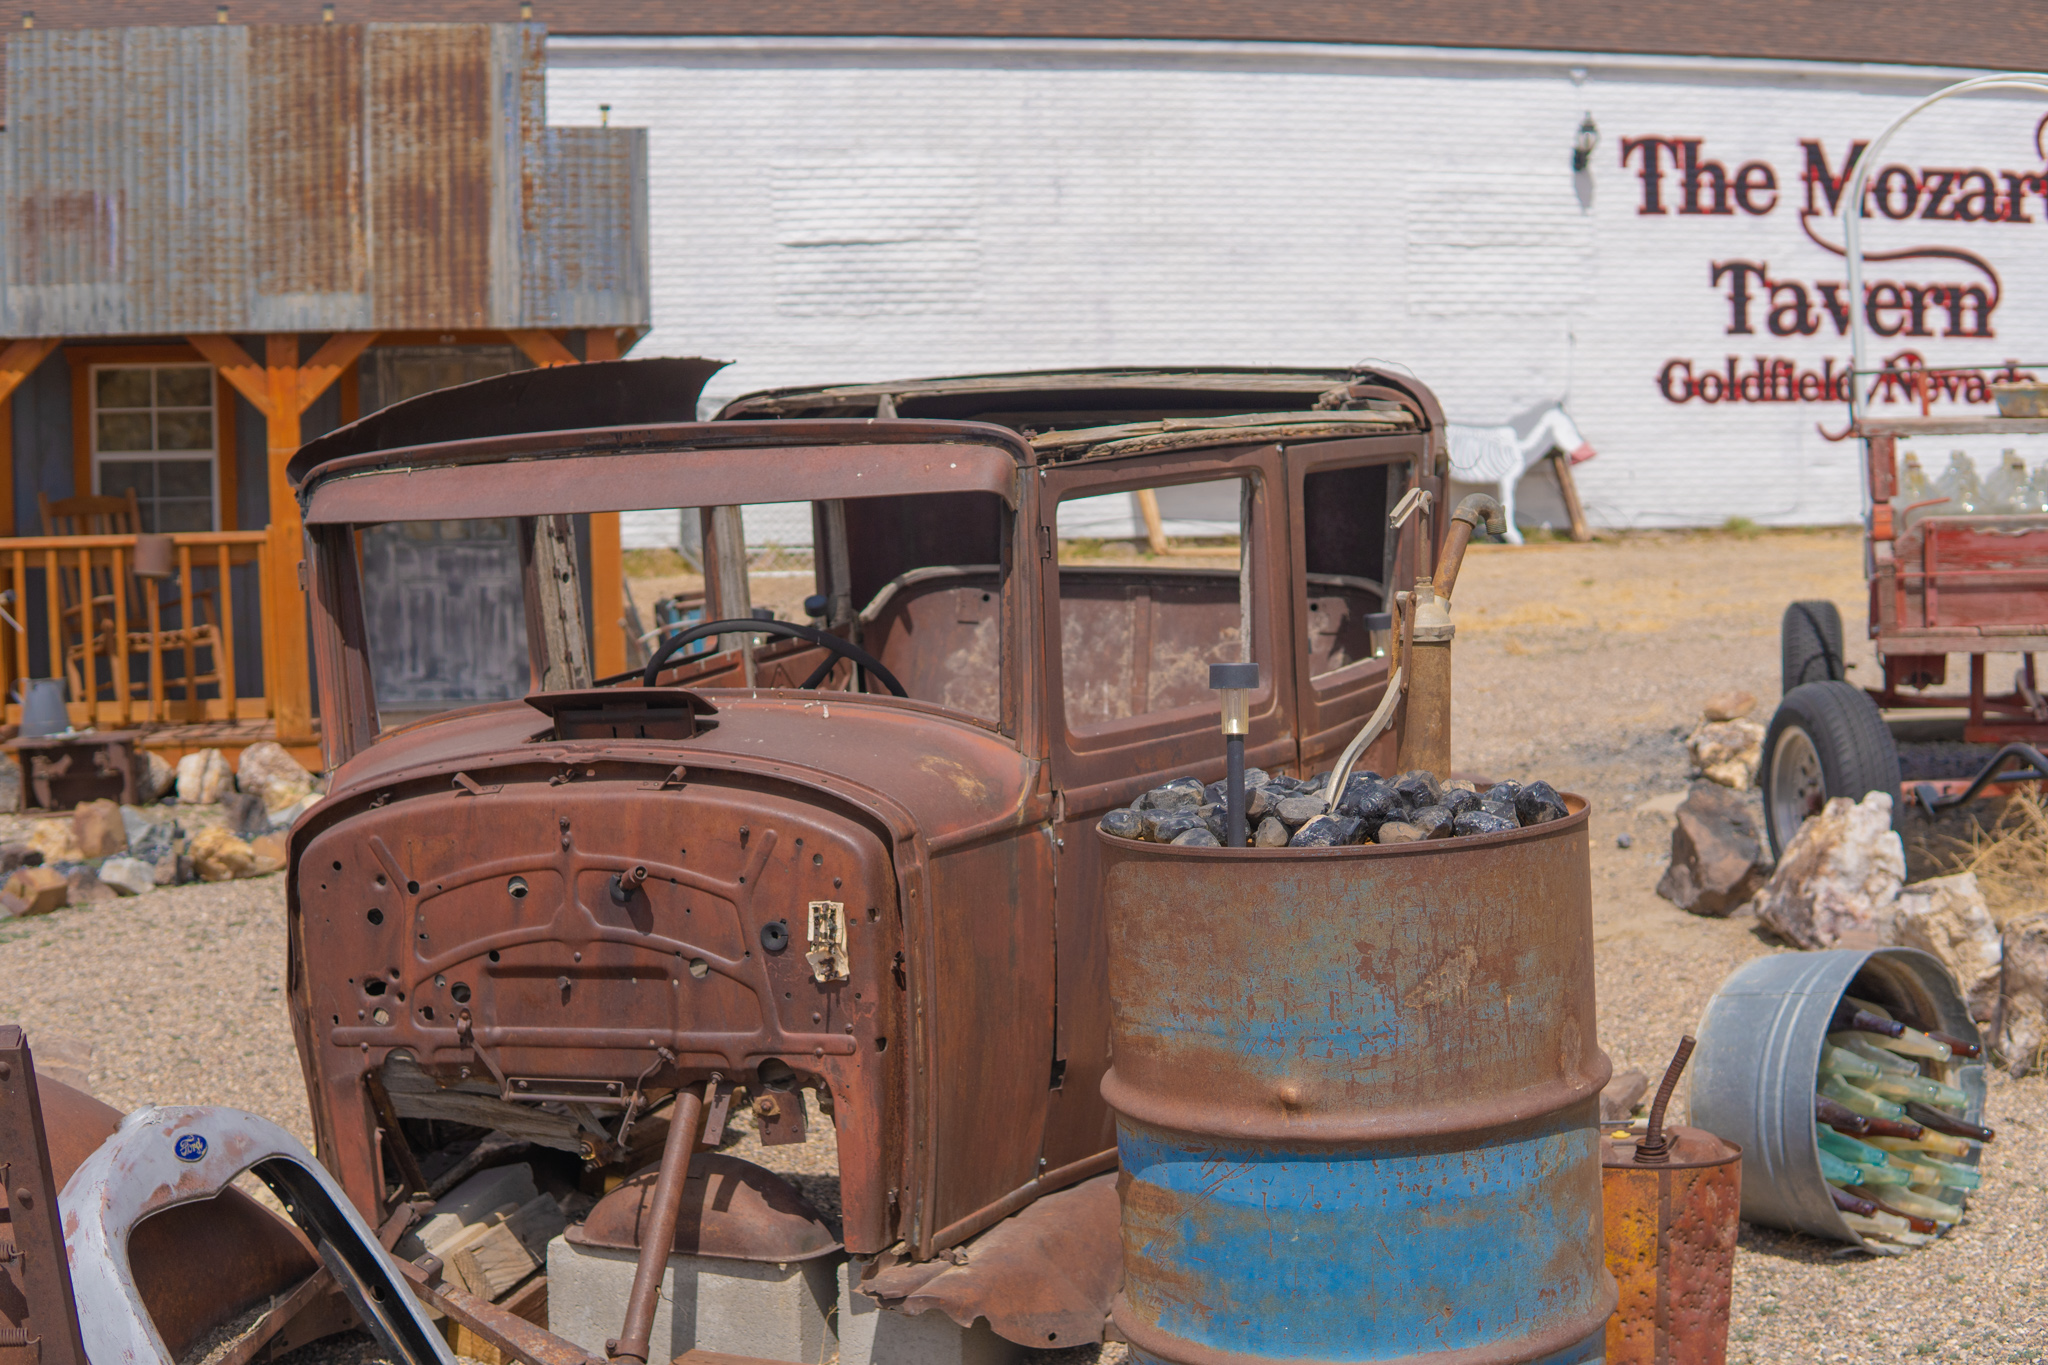 Goldfield Ghost Town